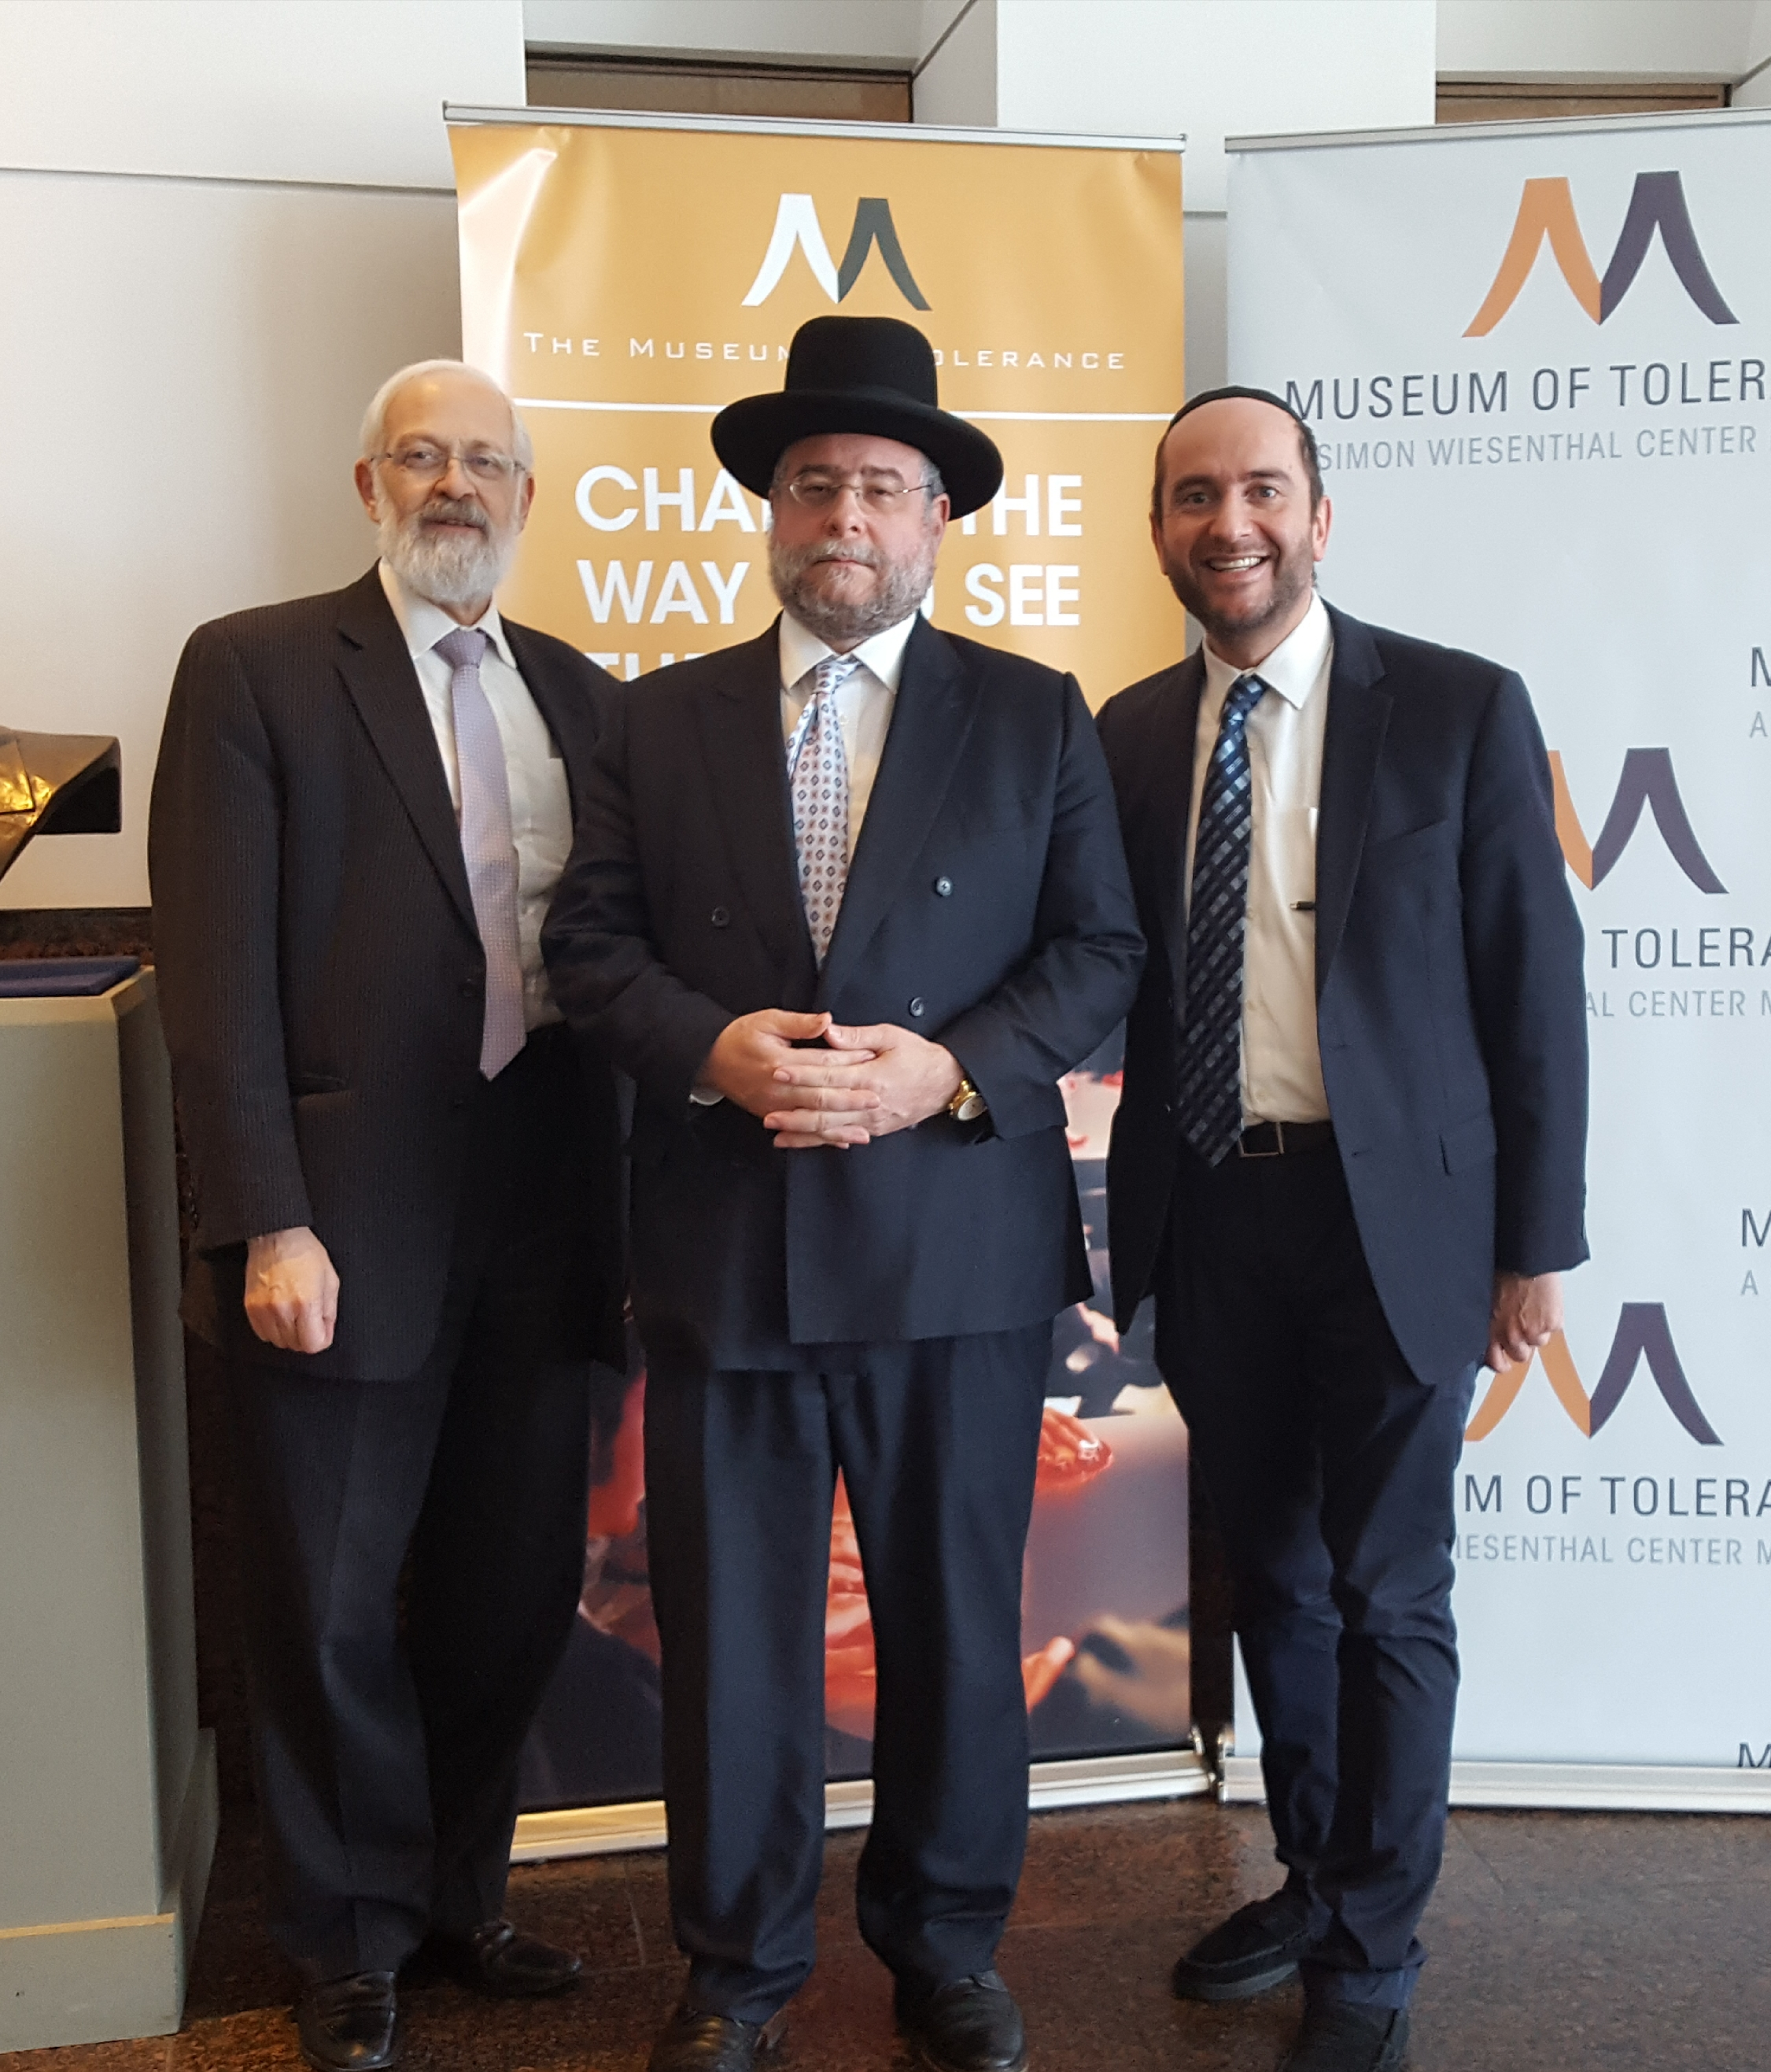 Rabbi Dunner accompanies Moscow Chief Rabbi and Conference of European Rabbis President, Rabbi Pinchas Goldschmidt, to the Museum of Tolerance, Los Angeles (November 2016)